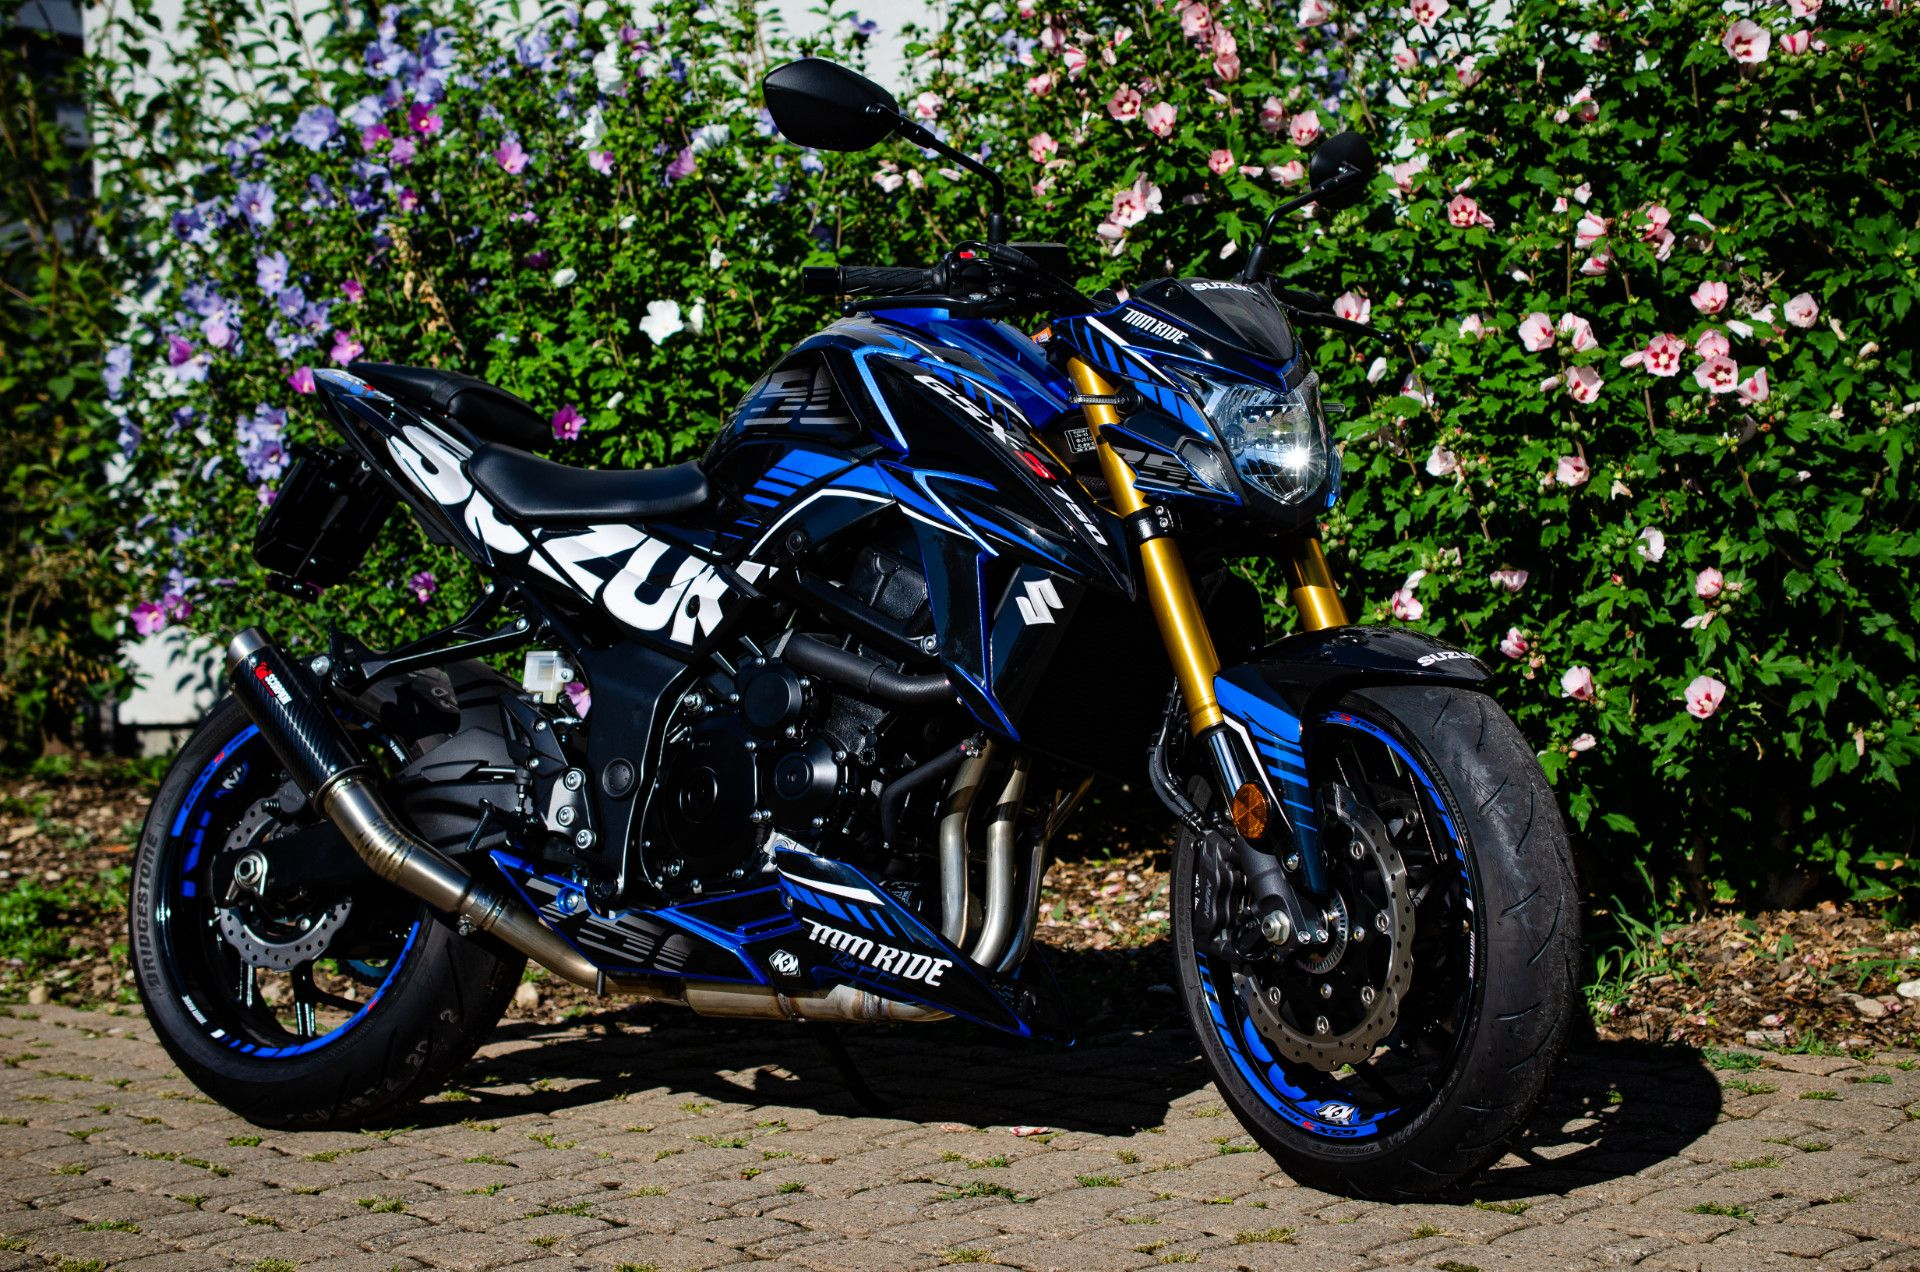 Suzuki GSX-S 750 Black and blue